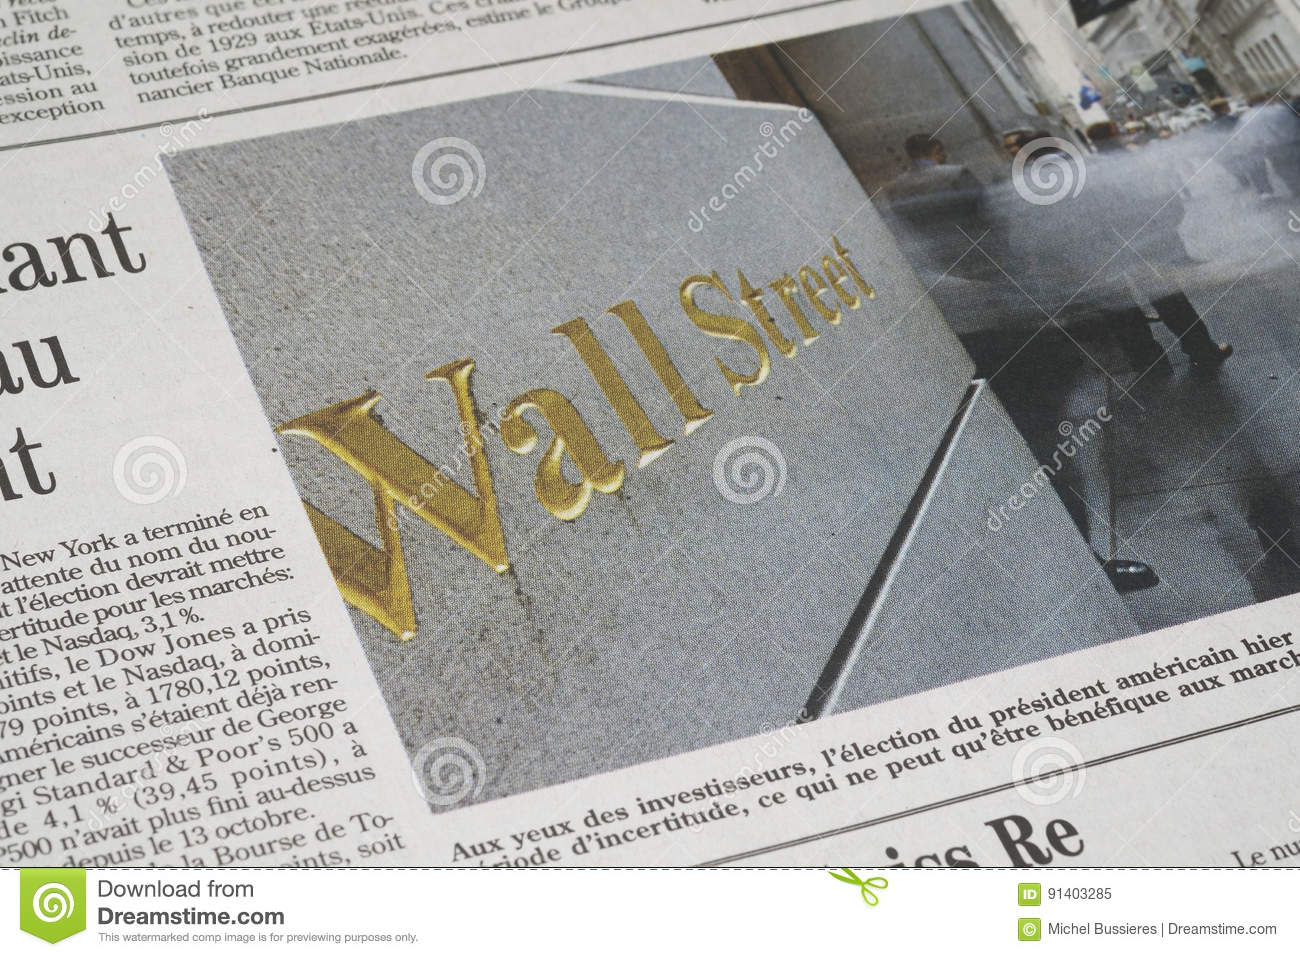 A Wall Street article